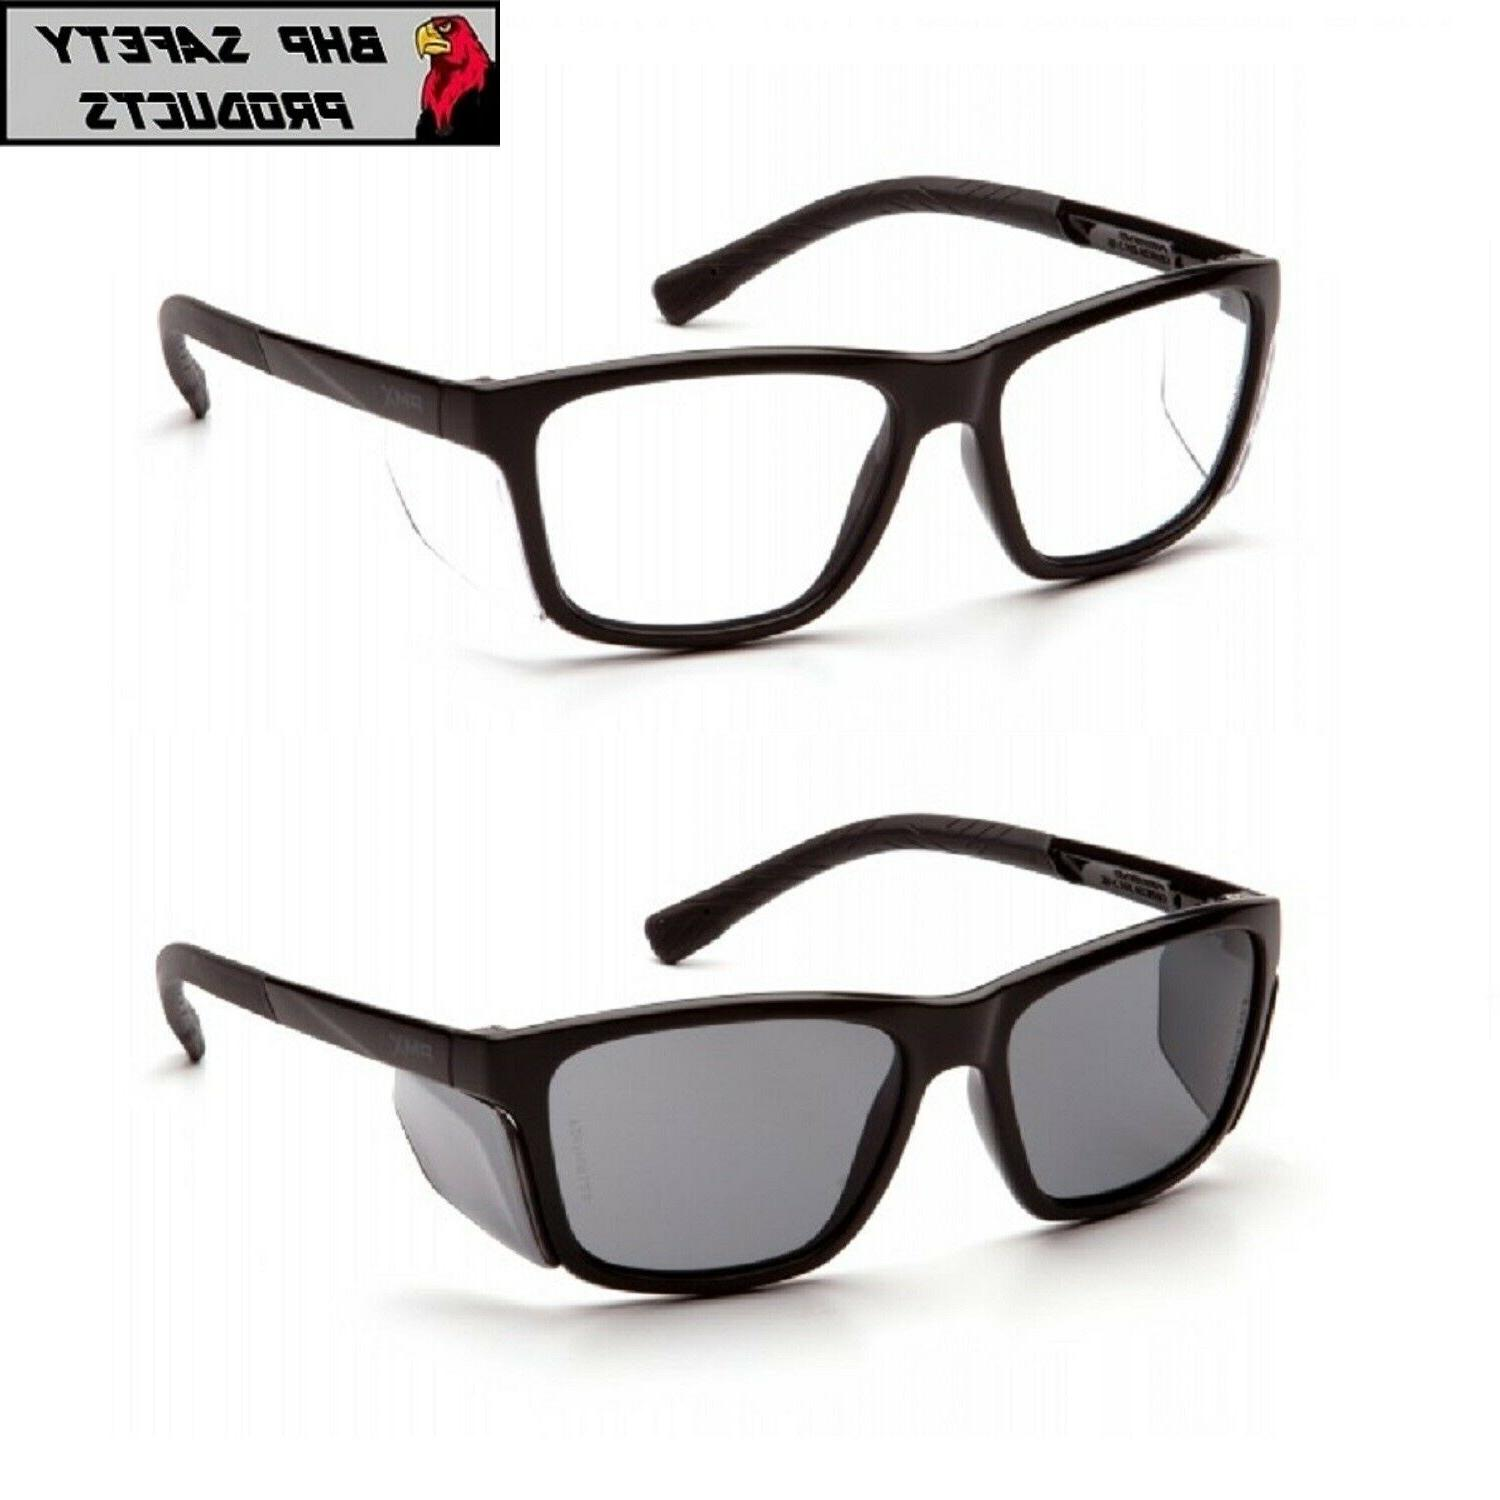 conaire safety glasses black frame with integrated